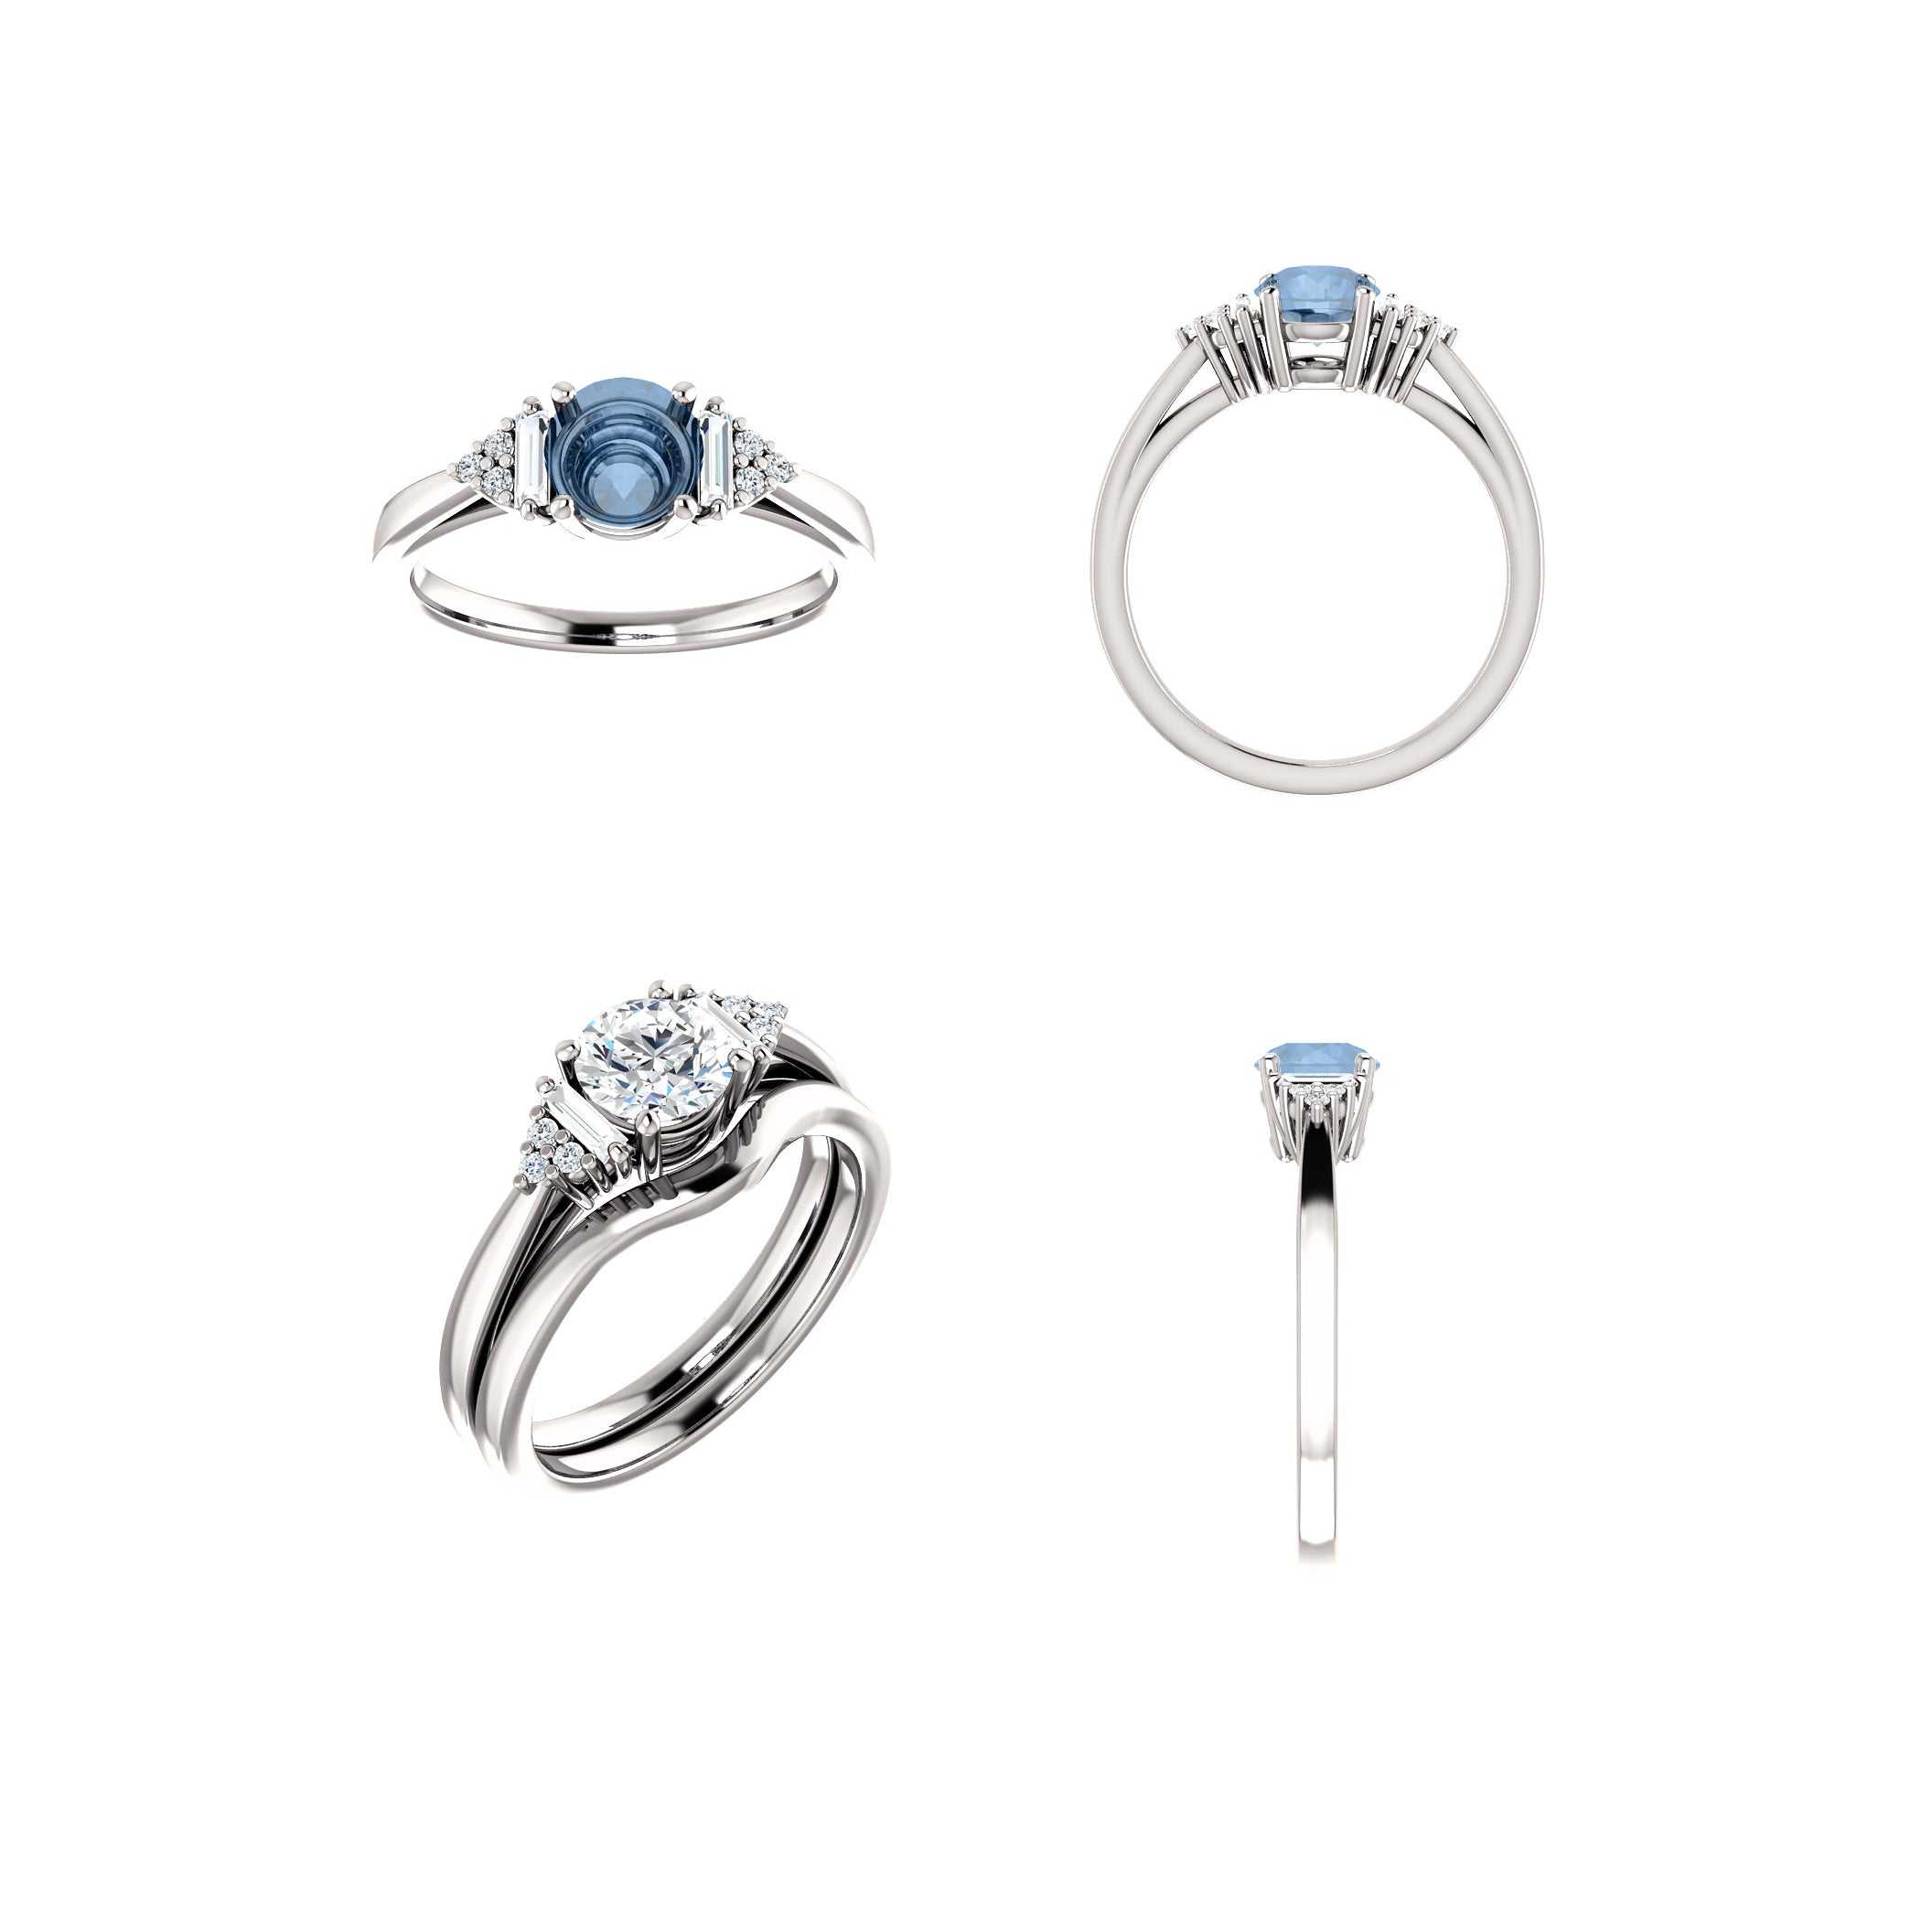 Autumn Setting - Midwinter Co. Alternative Bridal Rings and Modern Fine Jewelry